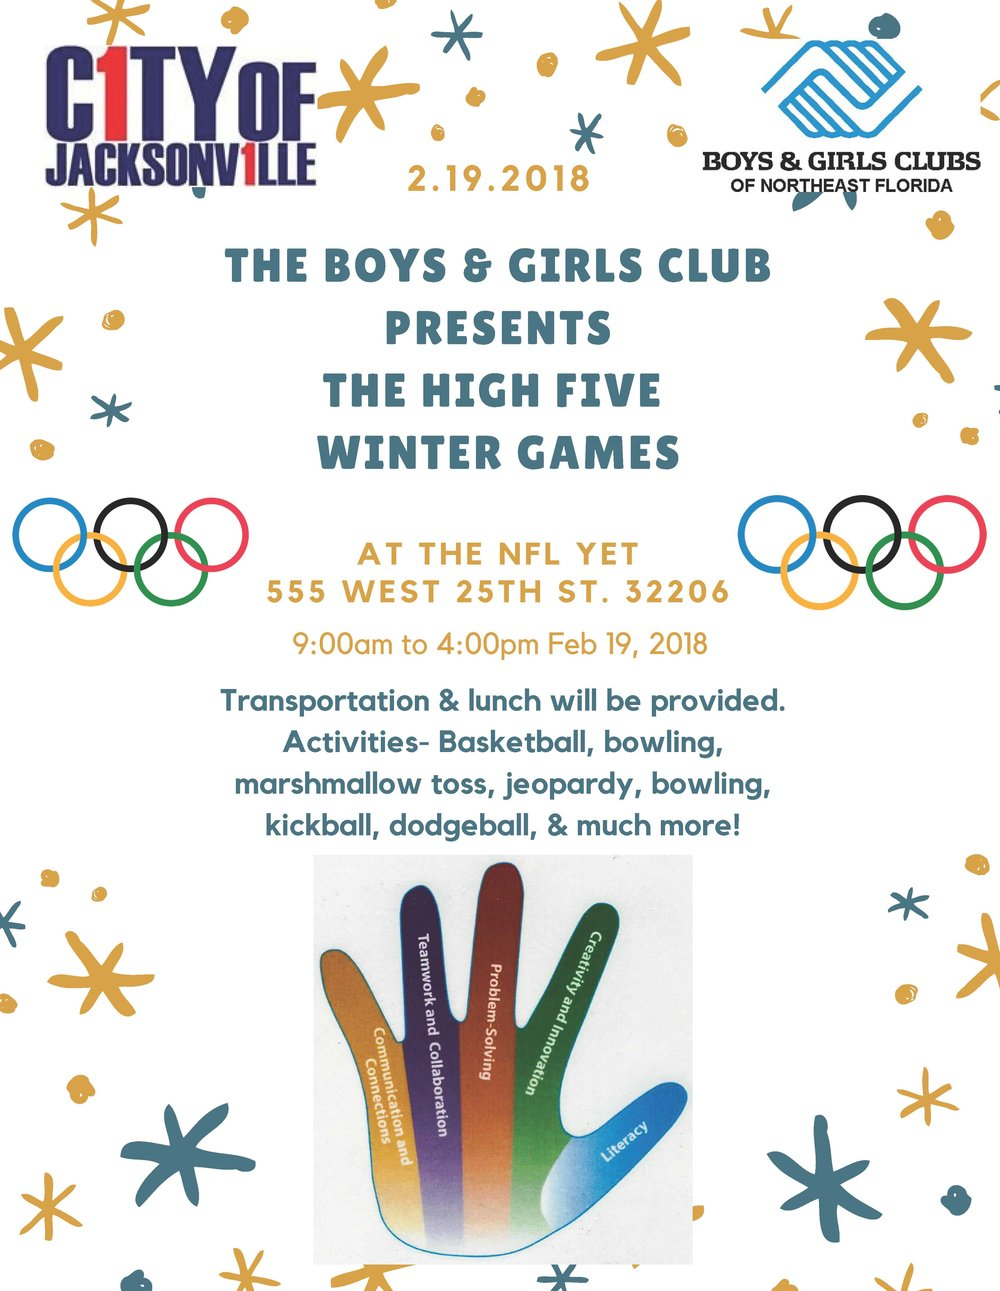 2.19.2018 High Five Winter Games flyer 4.jpg